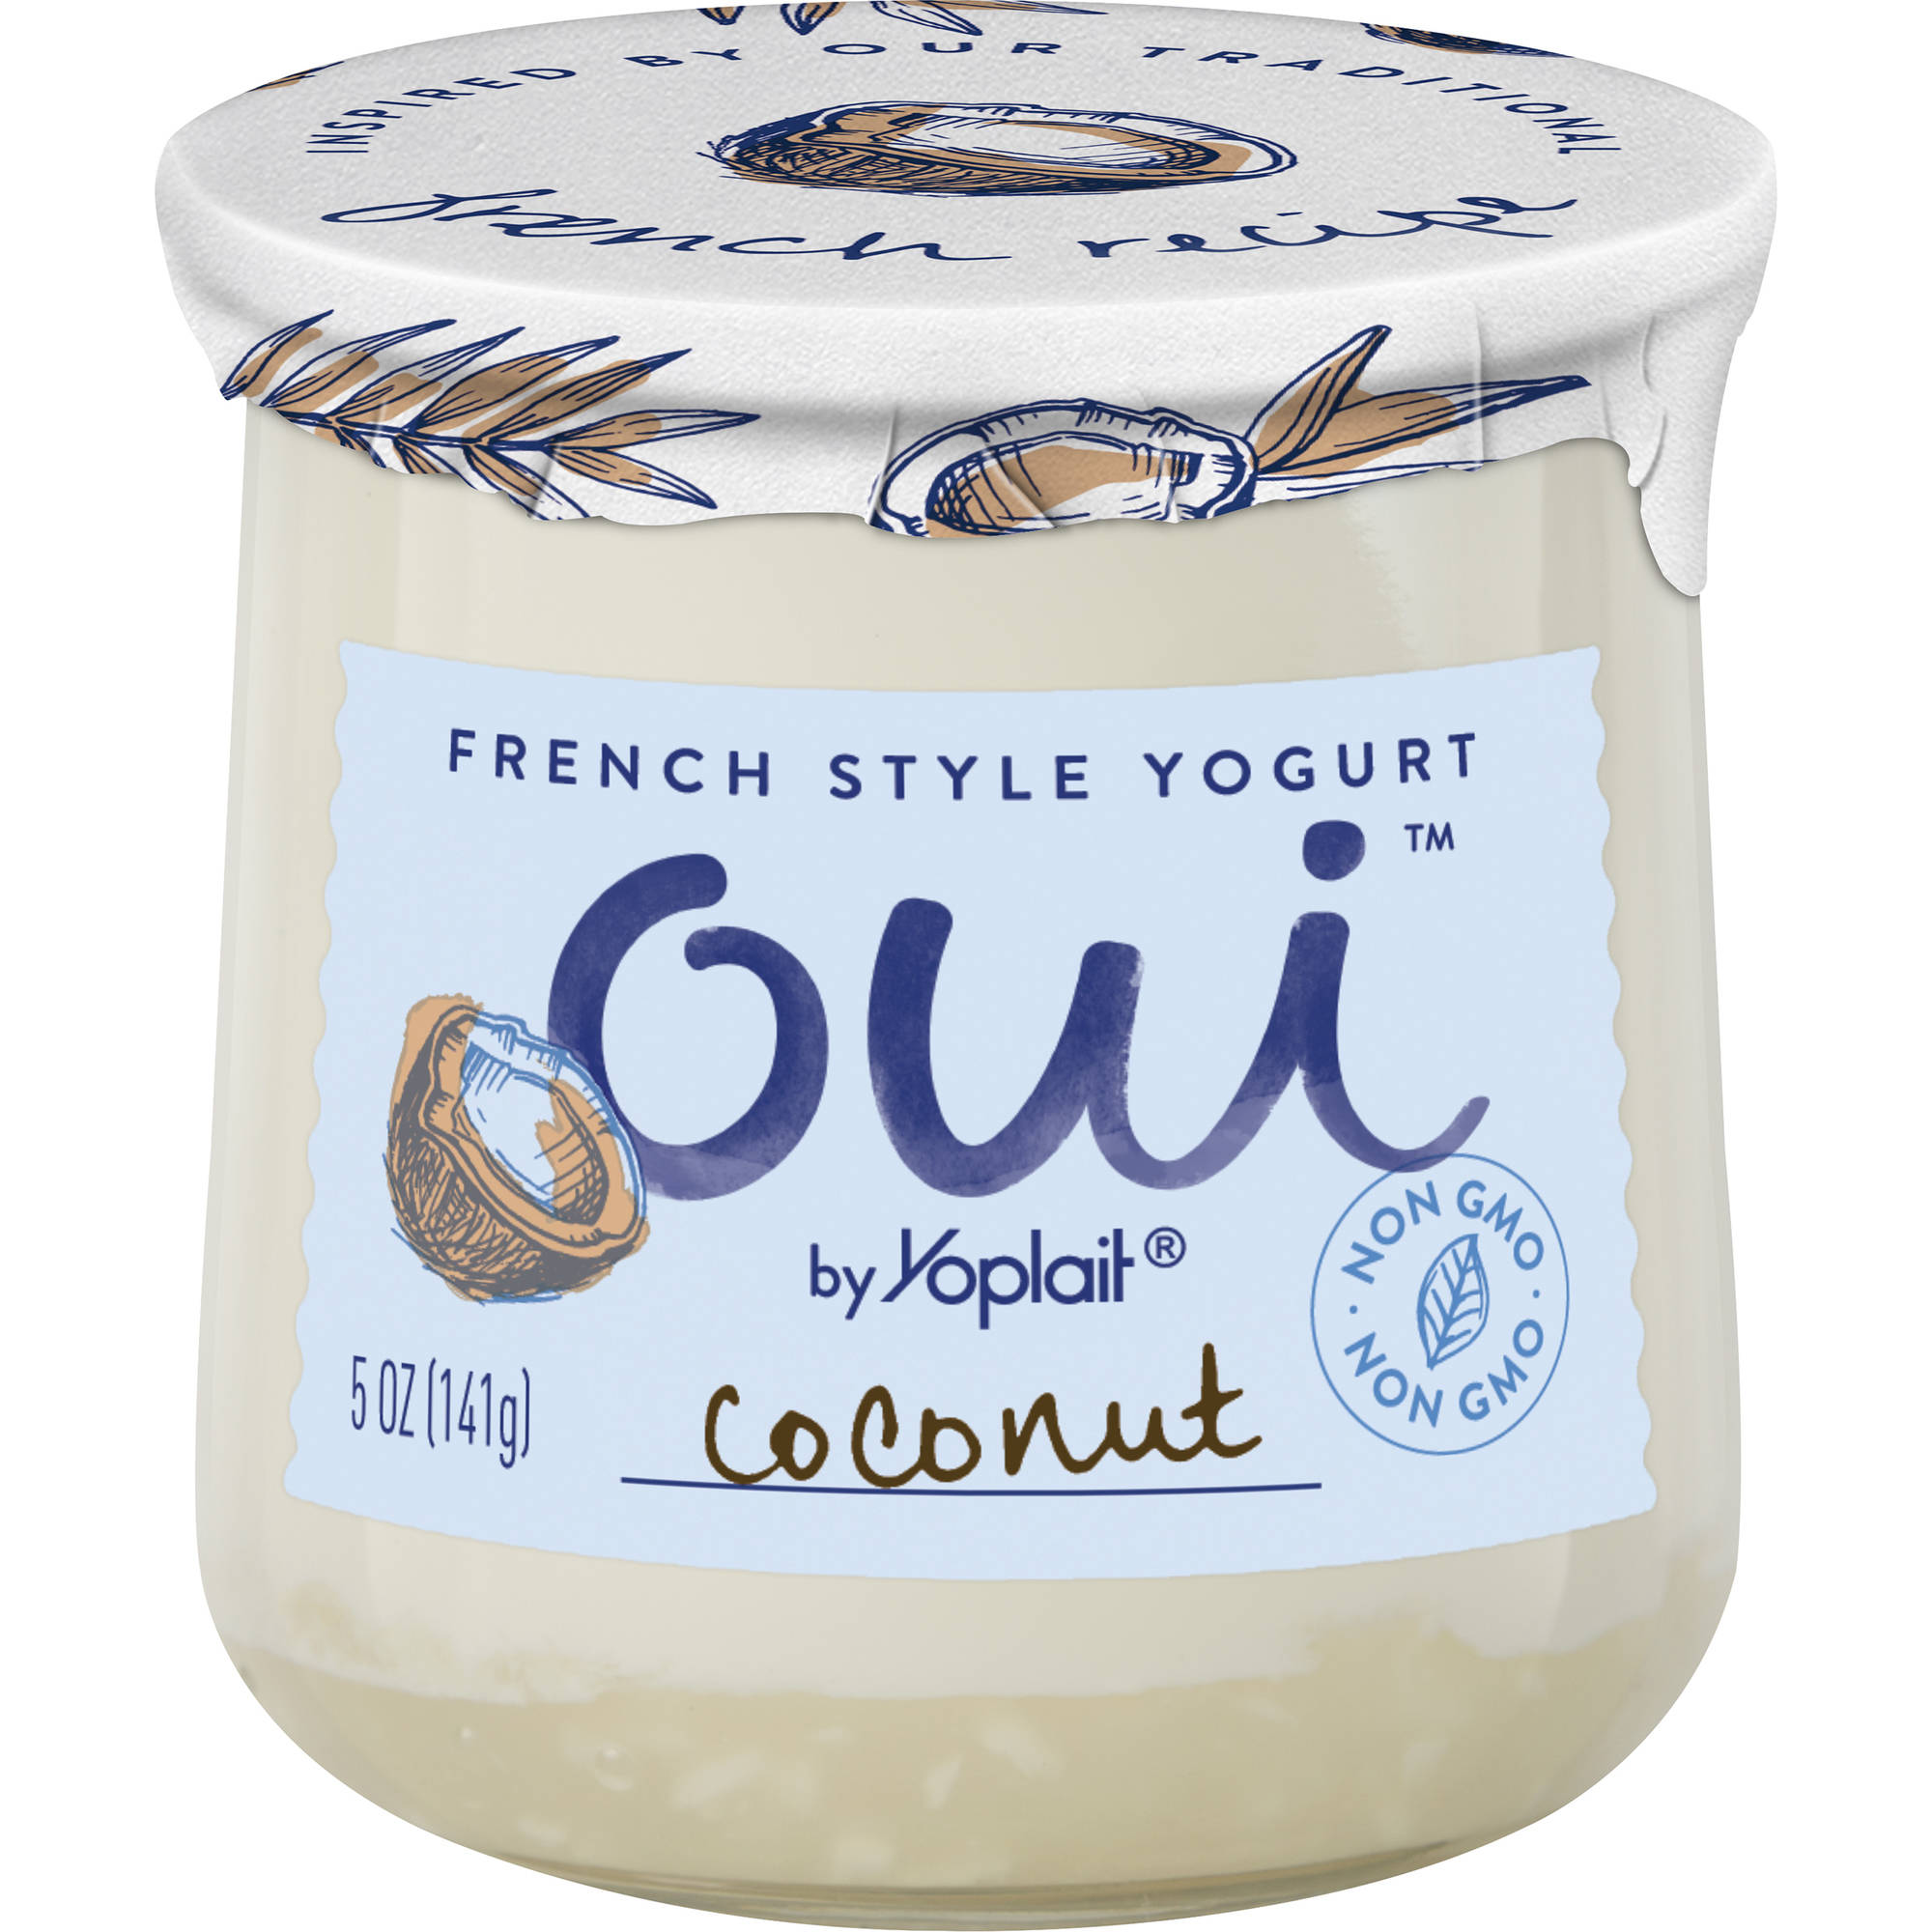 Yoplait Le Rice Nutritional Information Besto Blog